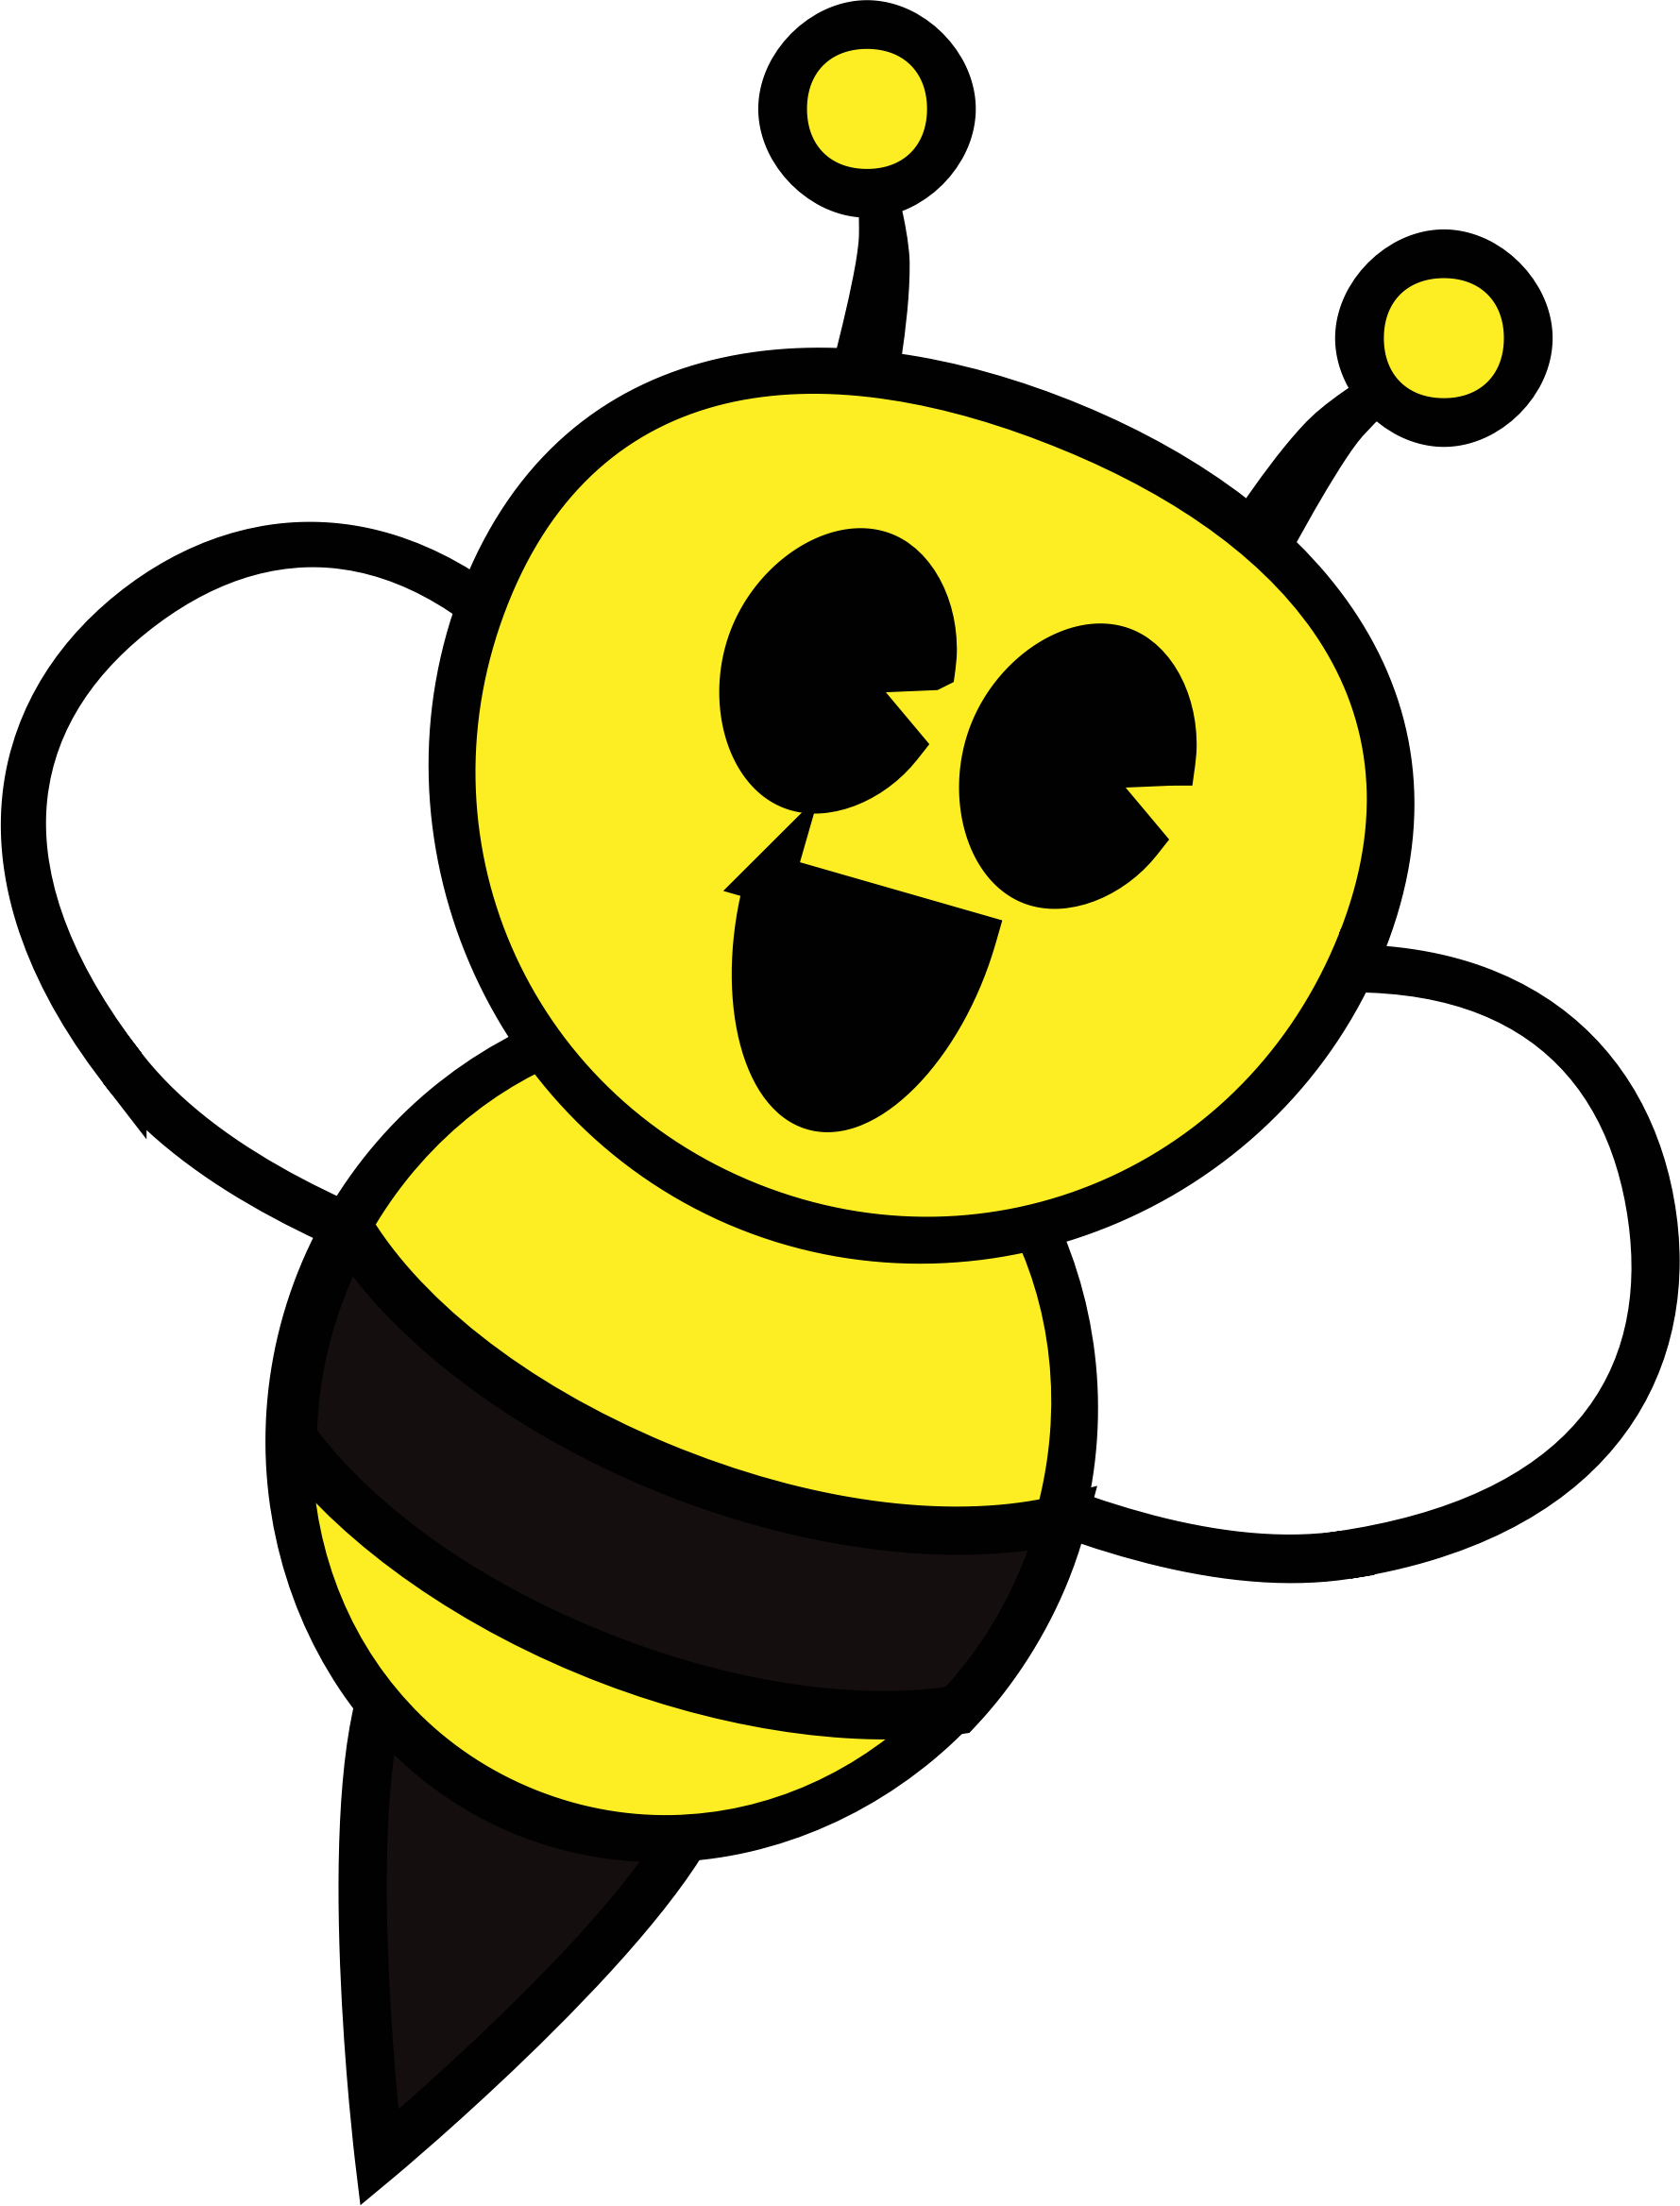 Bee vector png. Clipart big image